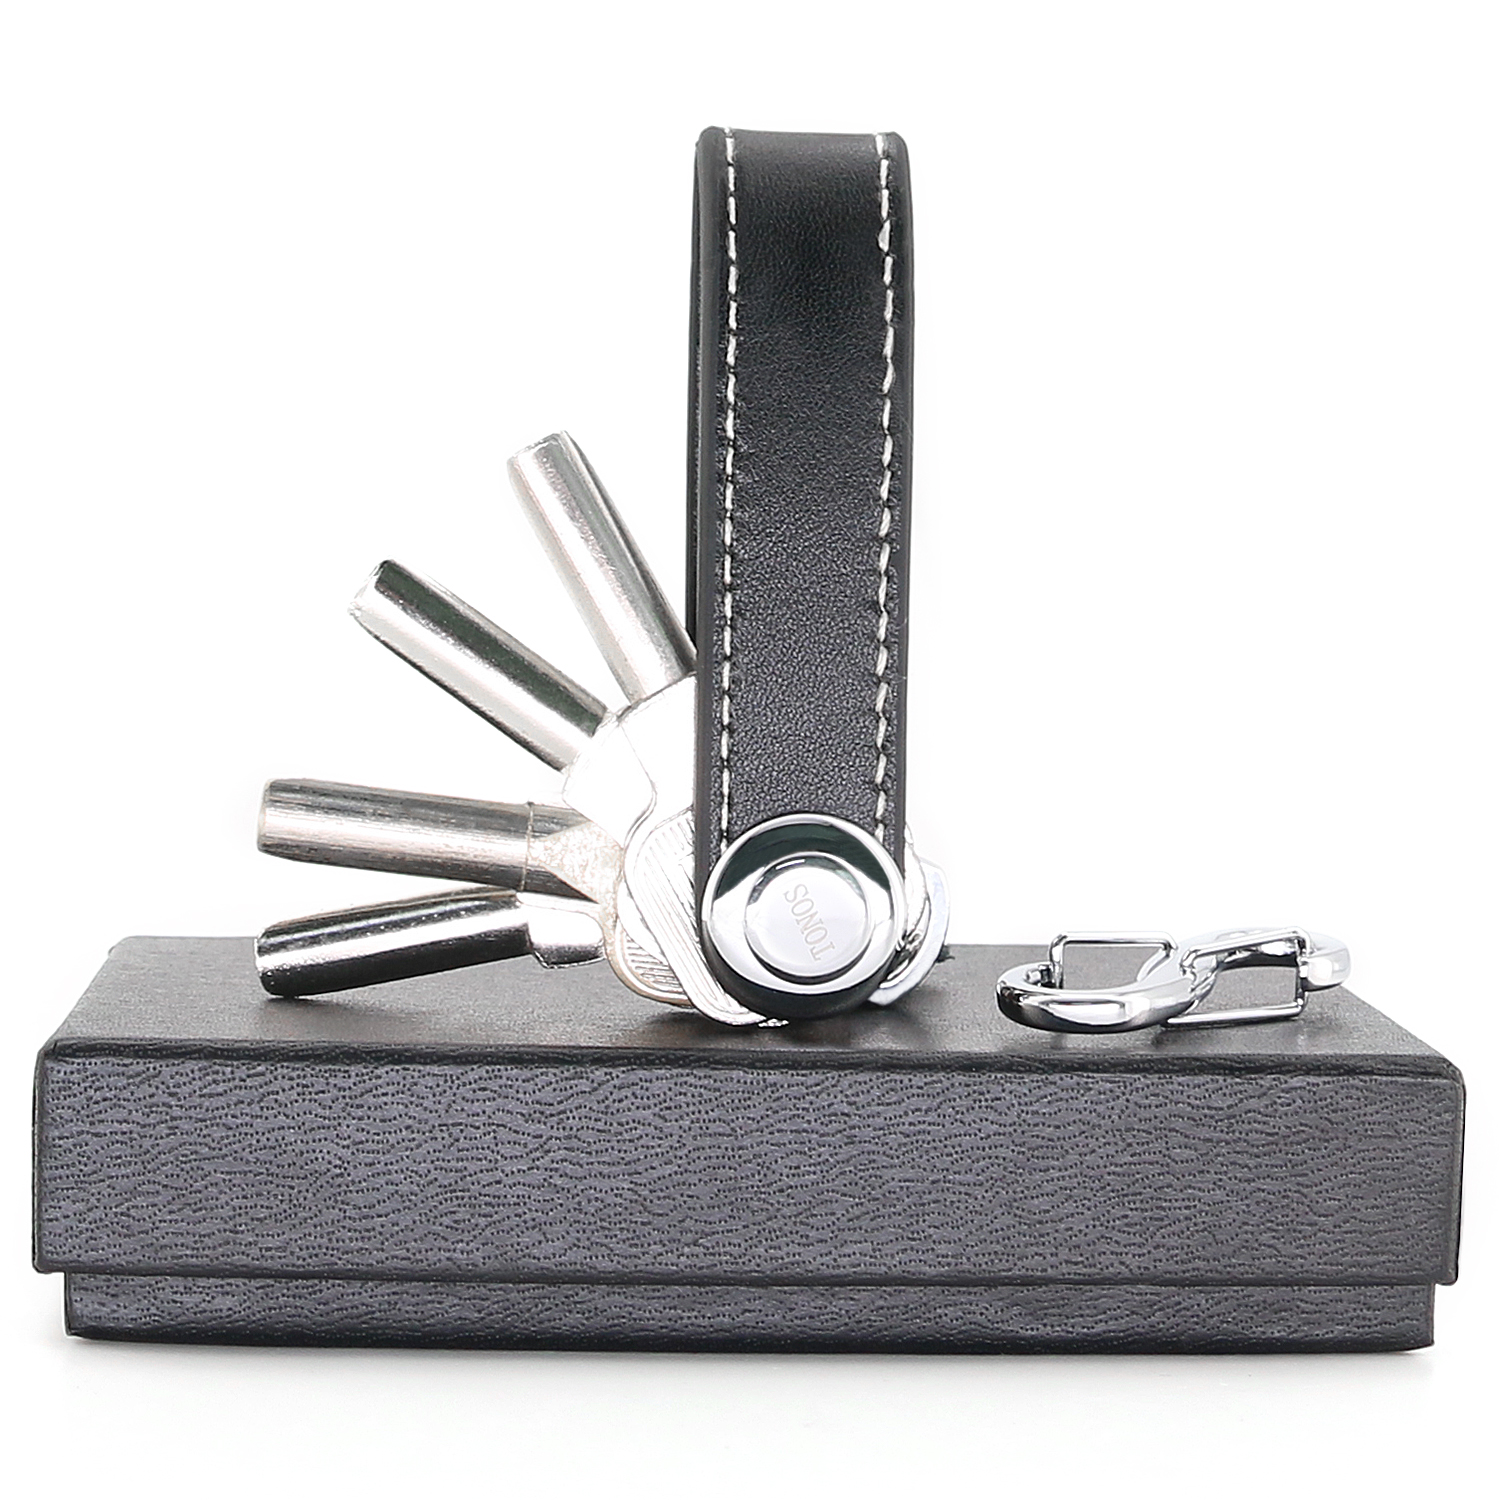 Compact Key Chain Organizer With Leather Strap, Smart Key Ring Holds 8 Keys and Tools, Perfect For Pockets, Purses, and Bags (Black)